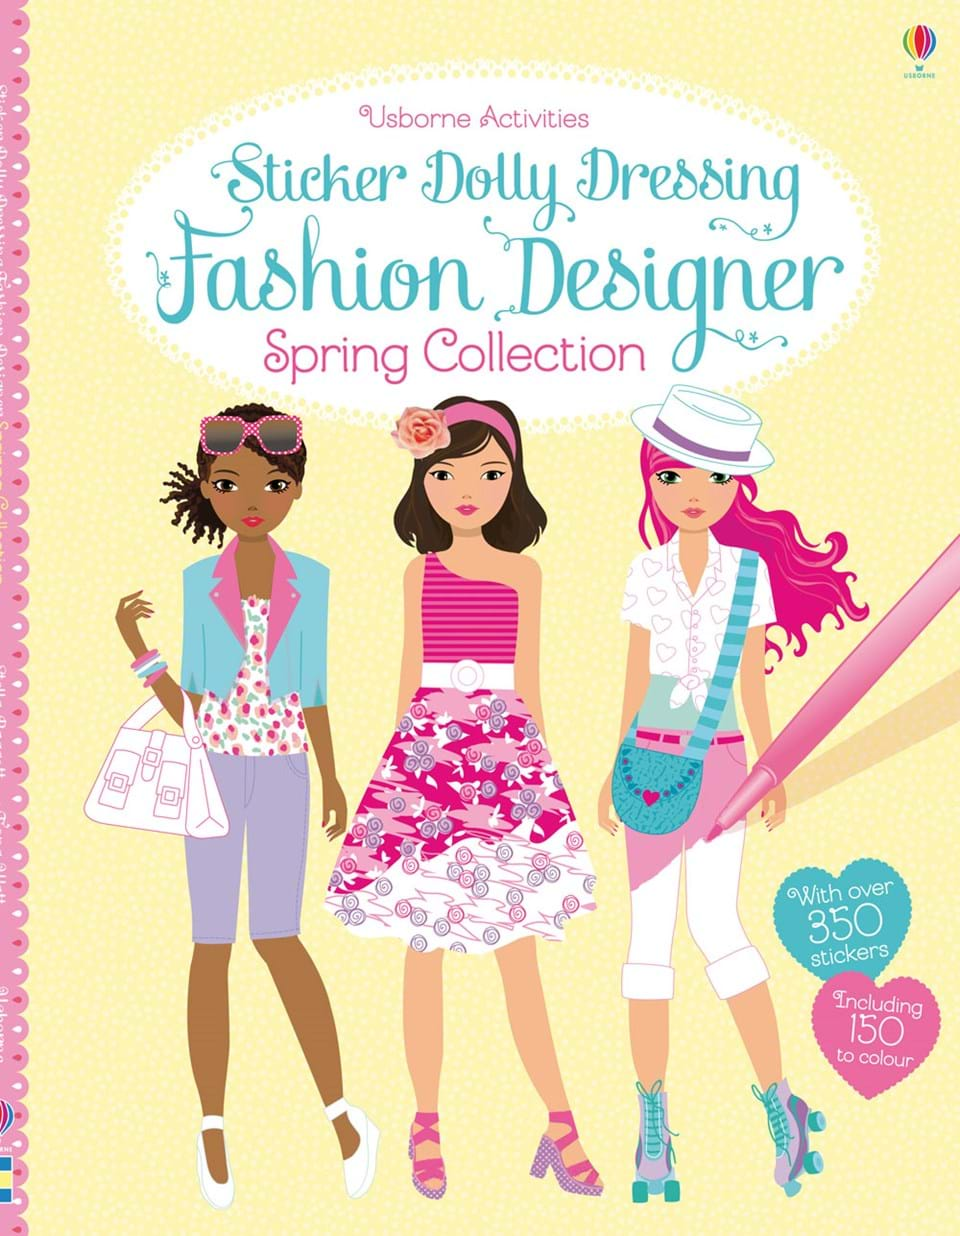 Fashion Designer Spring Collection At Usborne Books At Home